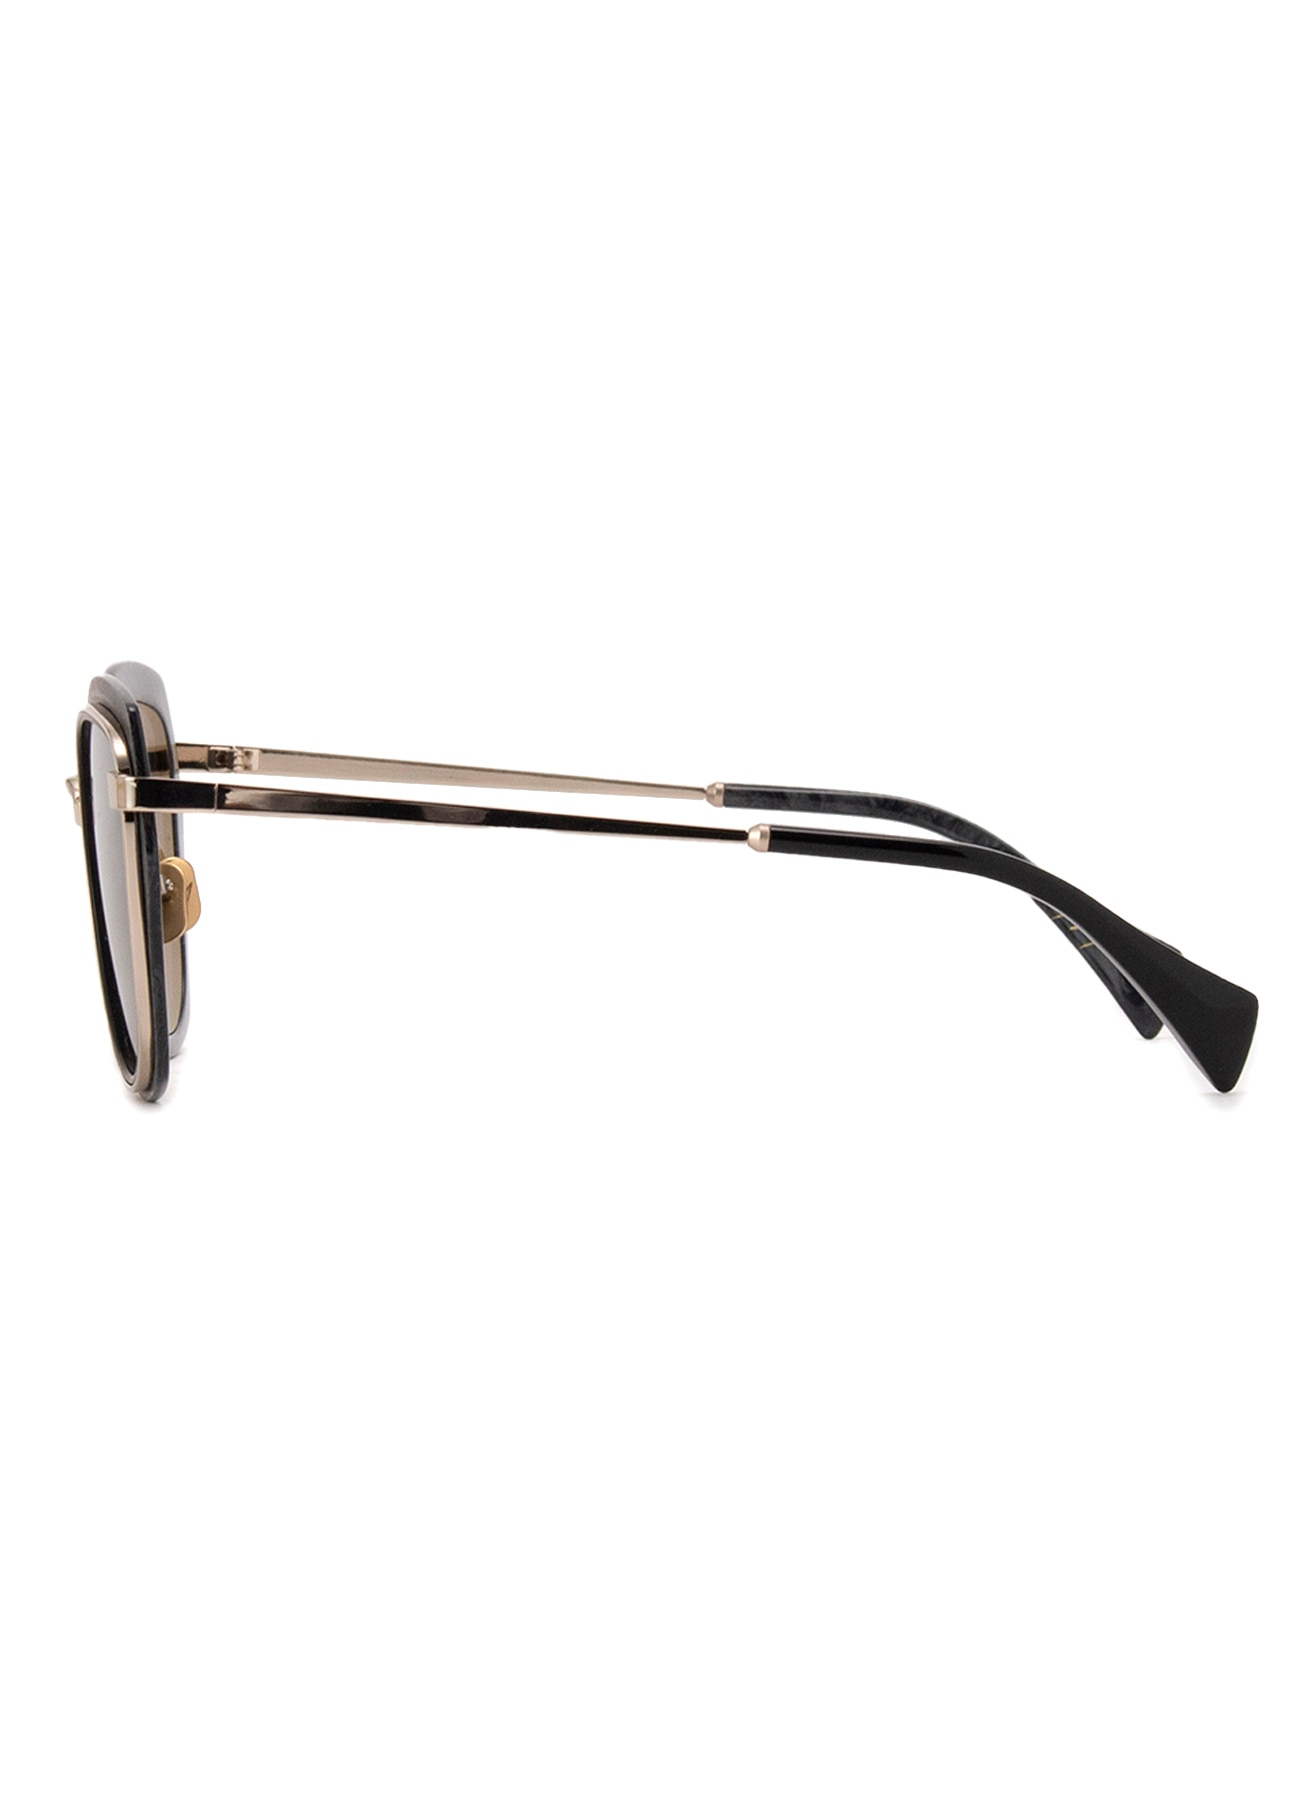 Stainless Steel Acetate YY5023 SUNGLASS​ ​